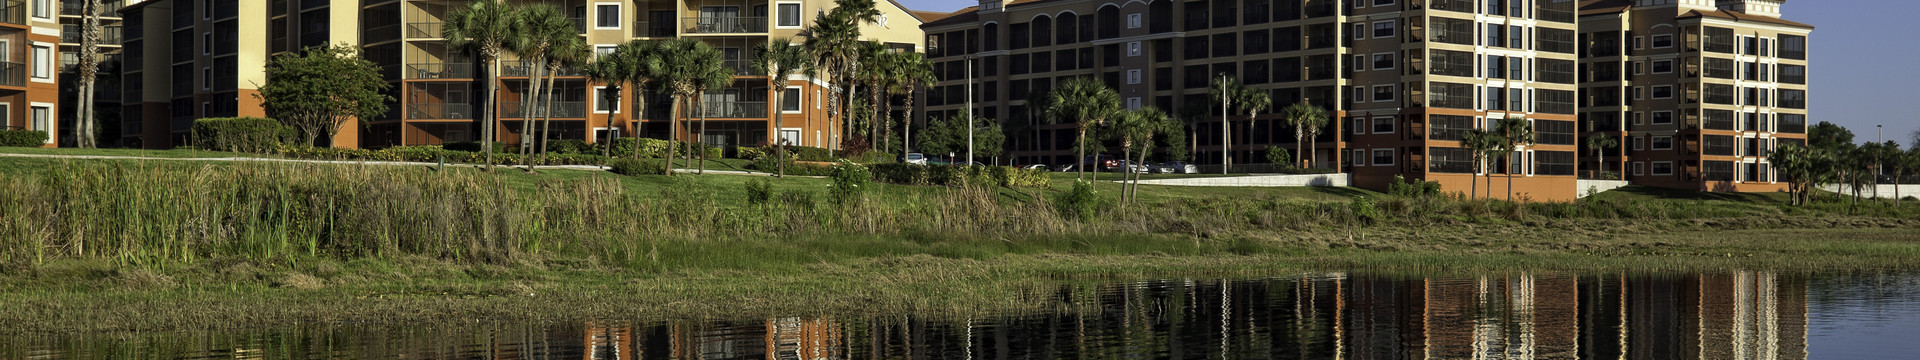 Exterior of our hotel in Orlando, FL | Orlando Florida Hotels | Resort Credit at Westgate Lakes Resort & Spa